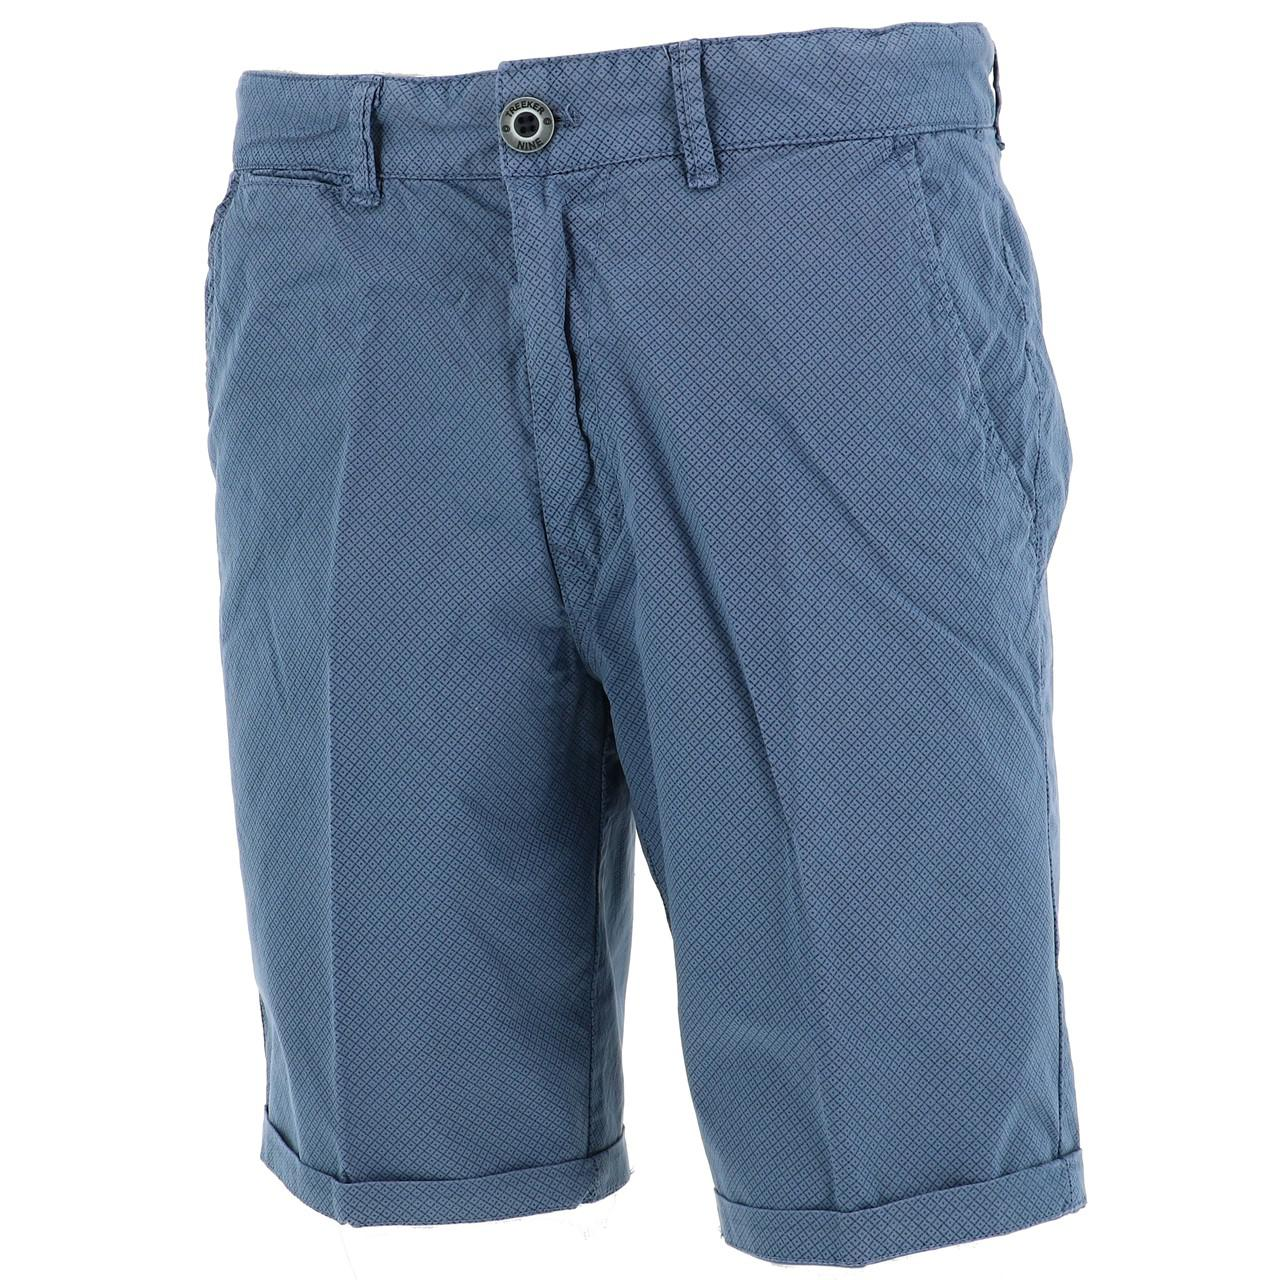 Bermuda-Shorts-Treeker9-Arizona-Chino-Strechy-Bl-Blue-47253-New